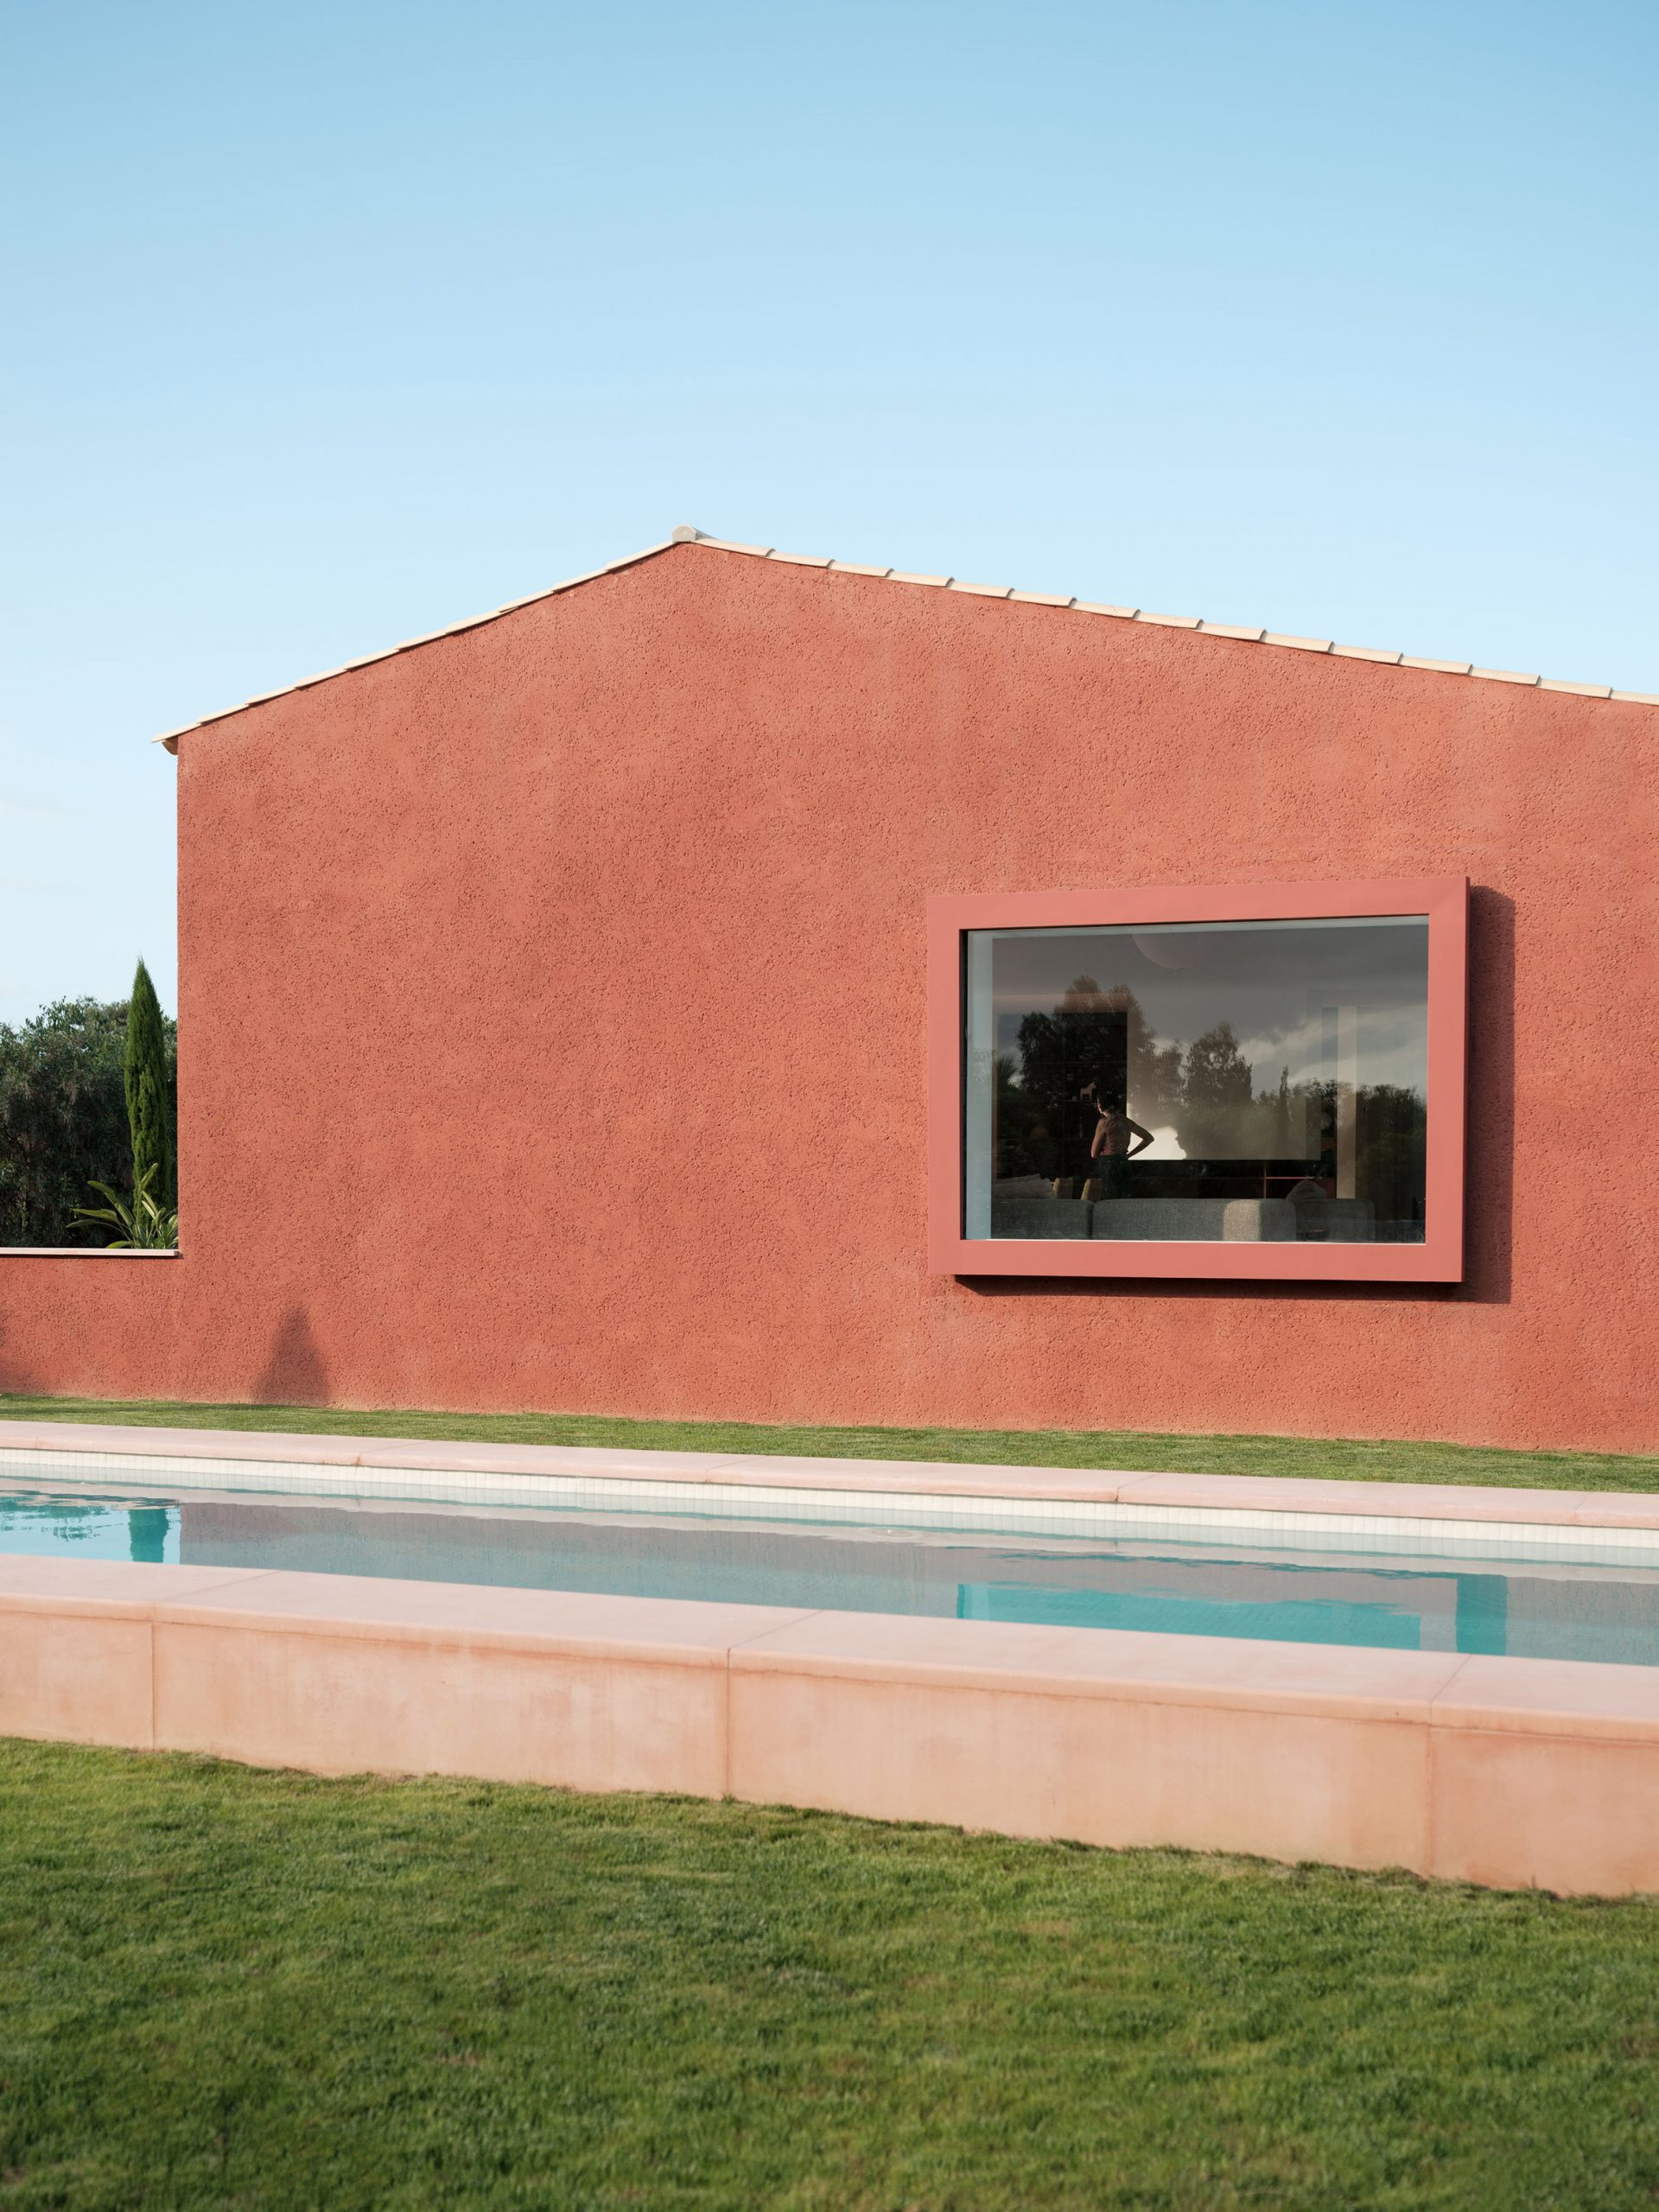 The red-coloured facade of a holiday home in Mallorca